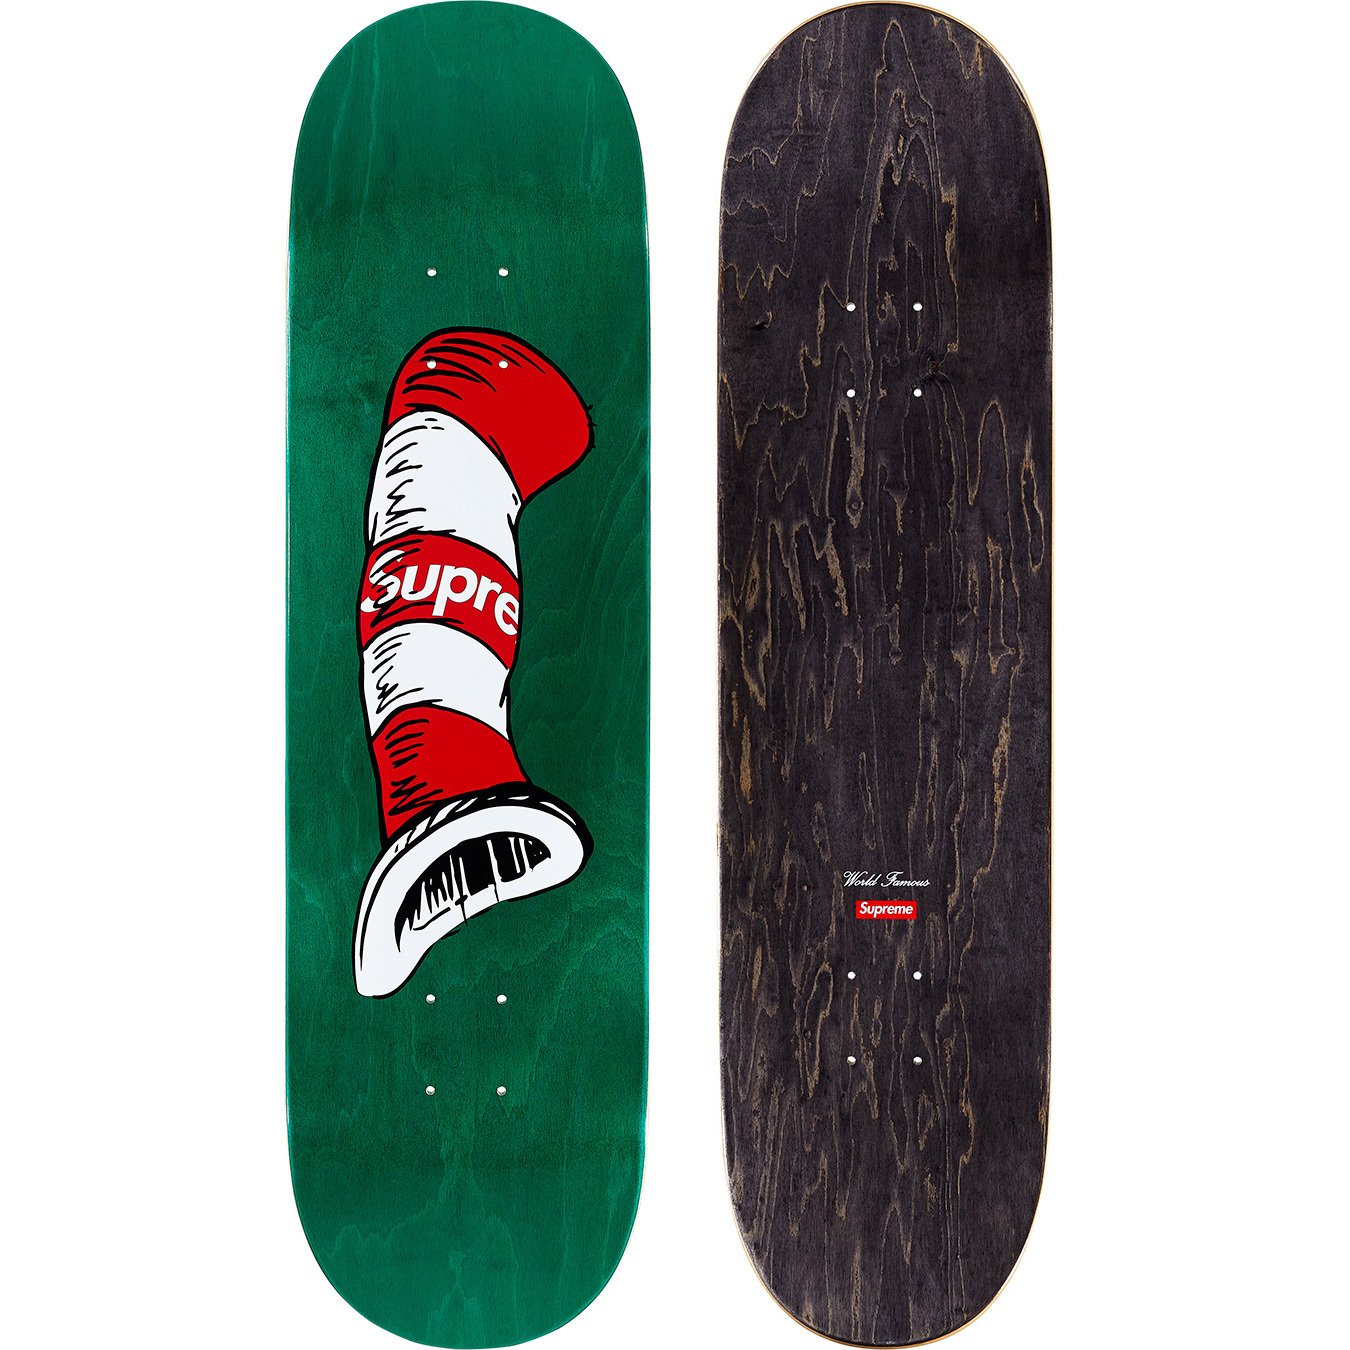 supreme-18aw-fall-winter-cat-in-the-hat-skateboard